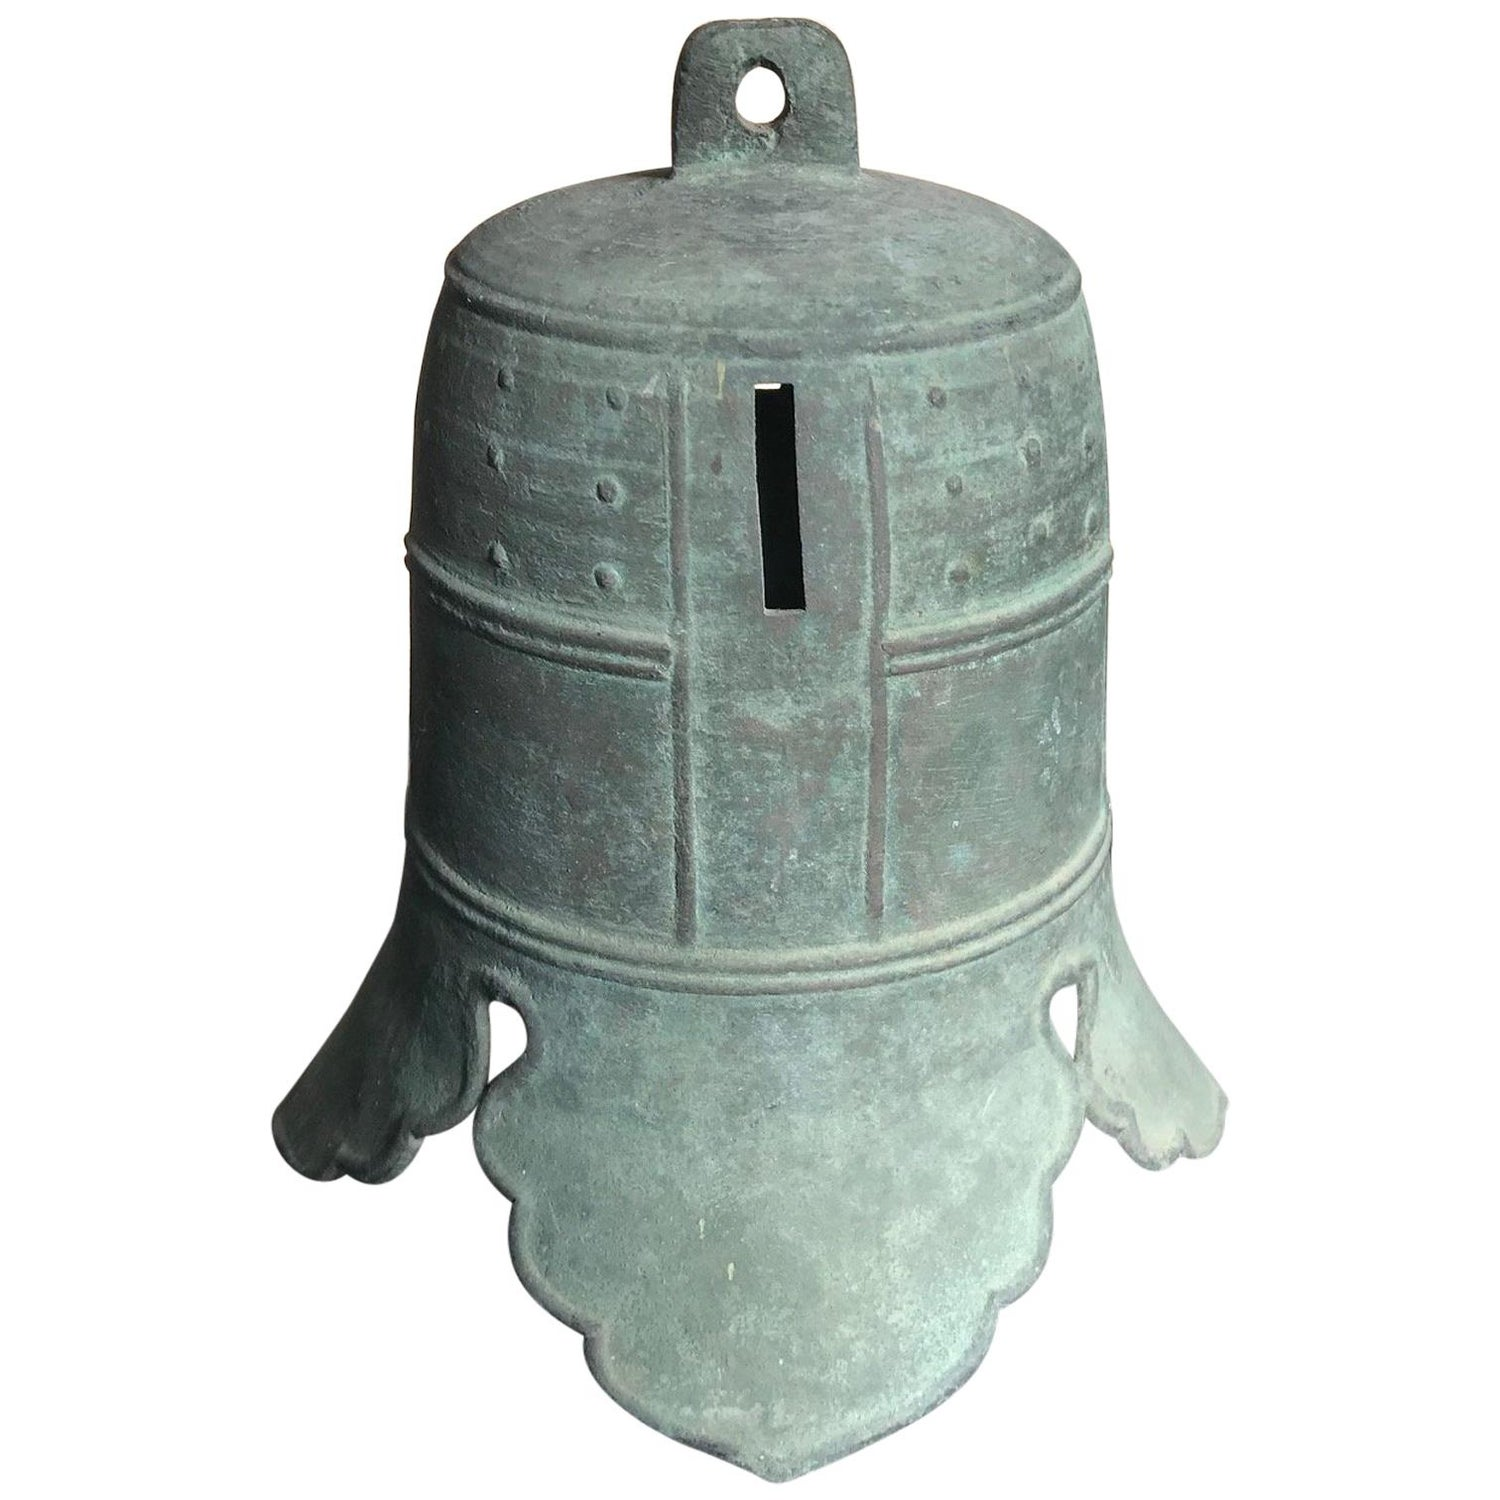 Monumental 19th Century Japanese Bronze Temple Lantern For Sale at ...